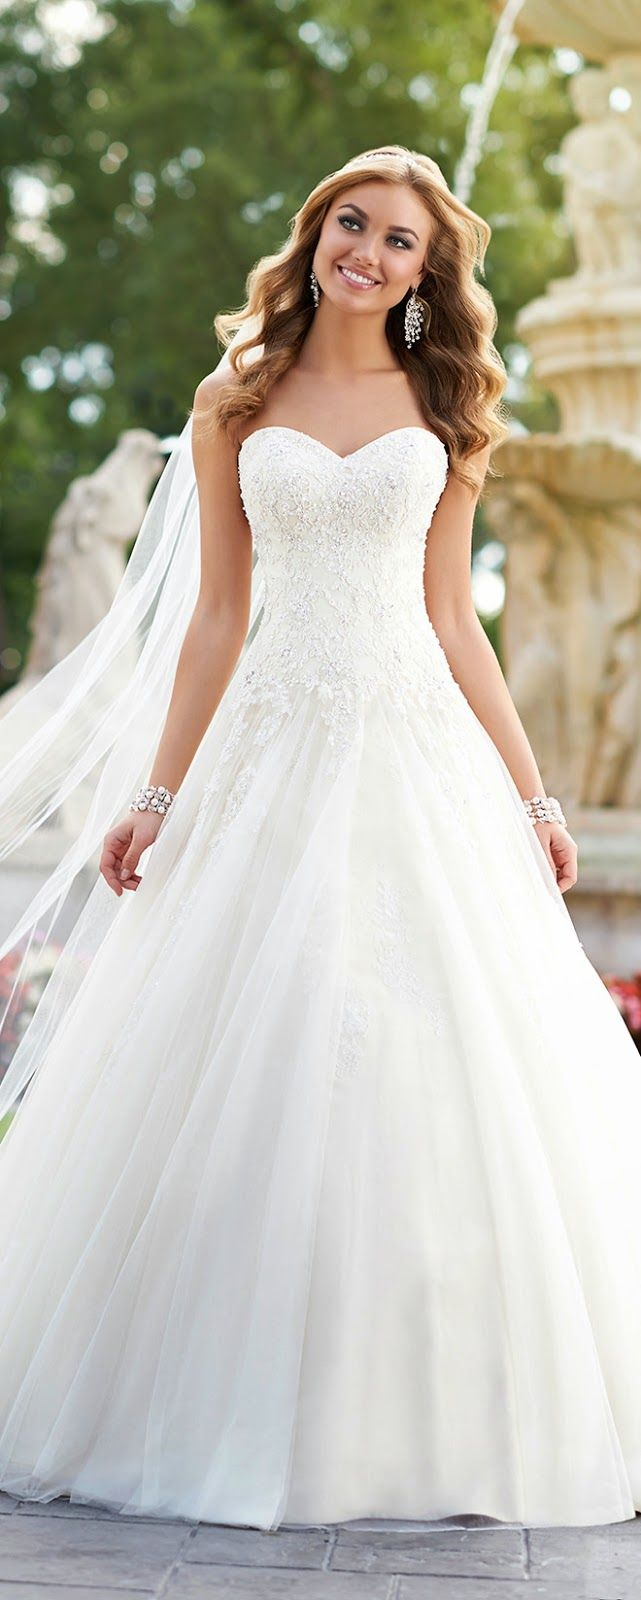 Fancy Fit and Flare Strapless Lace Wedding Dress with Beaded Belt